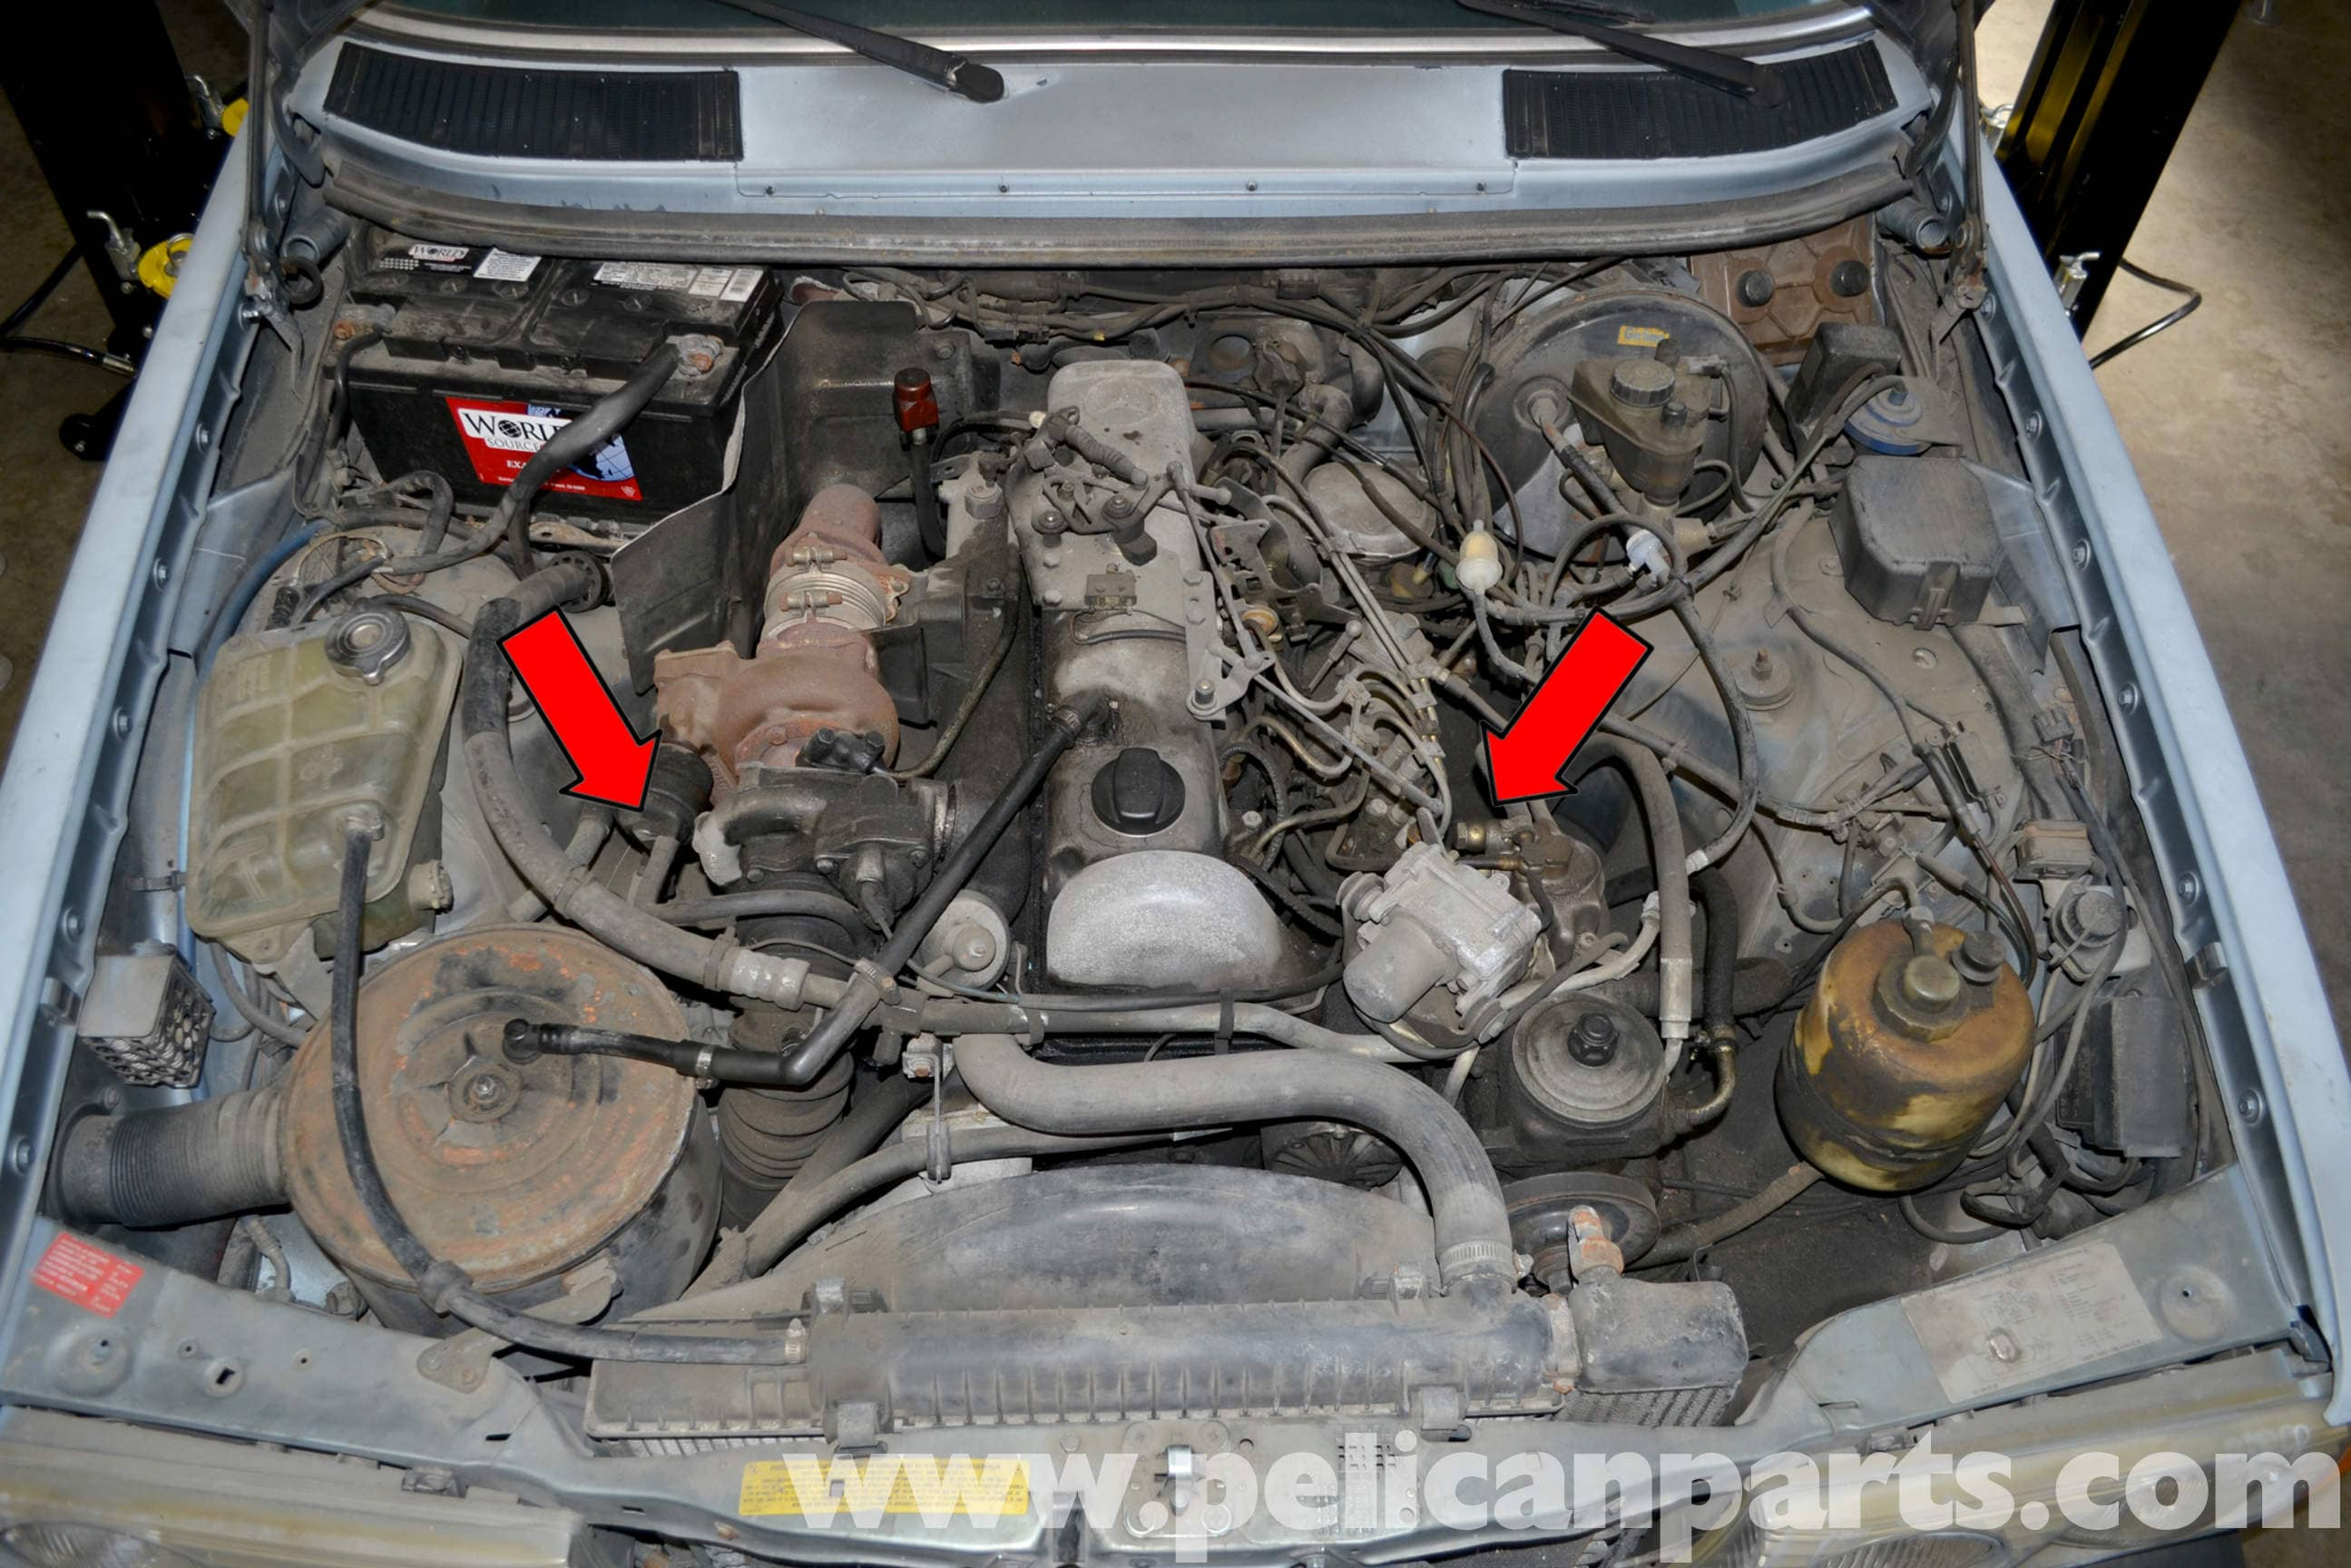 Mercedes Benz W123 Engine Mount And Shock Replacement